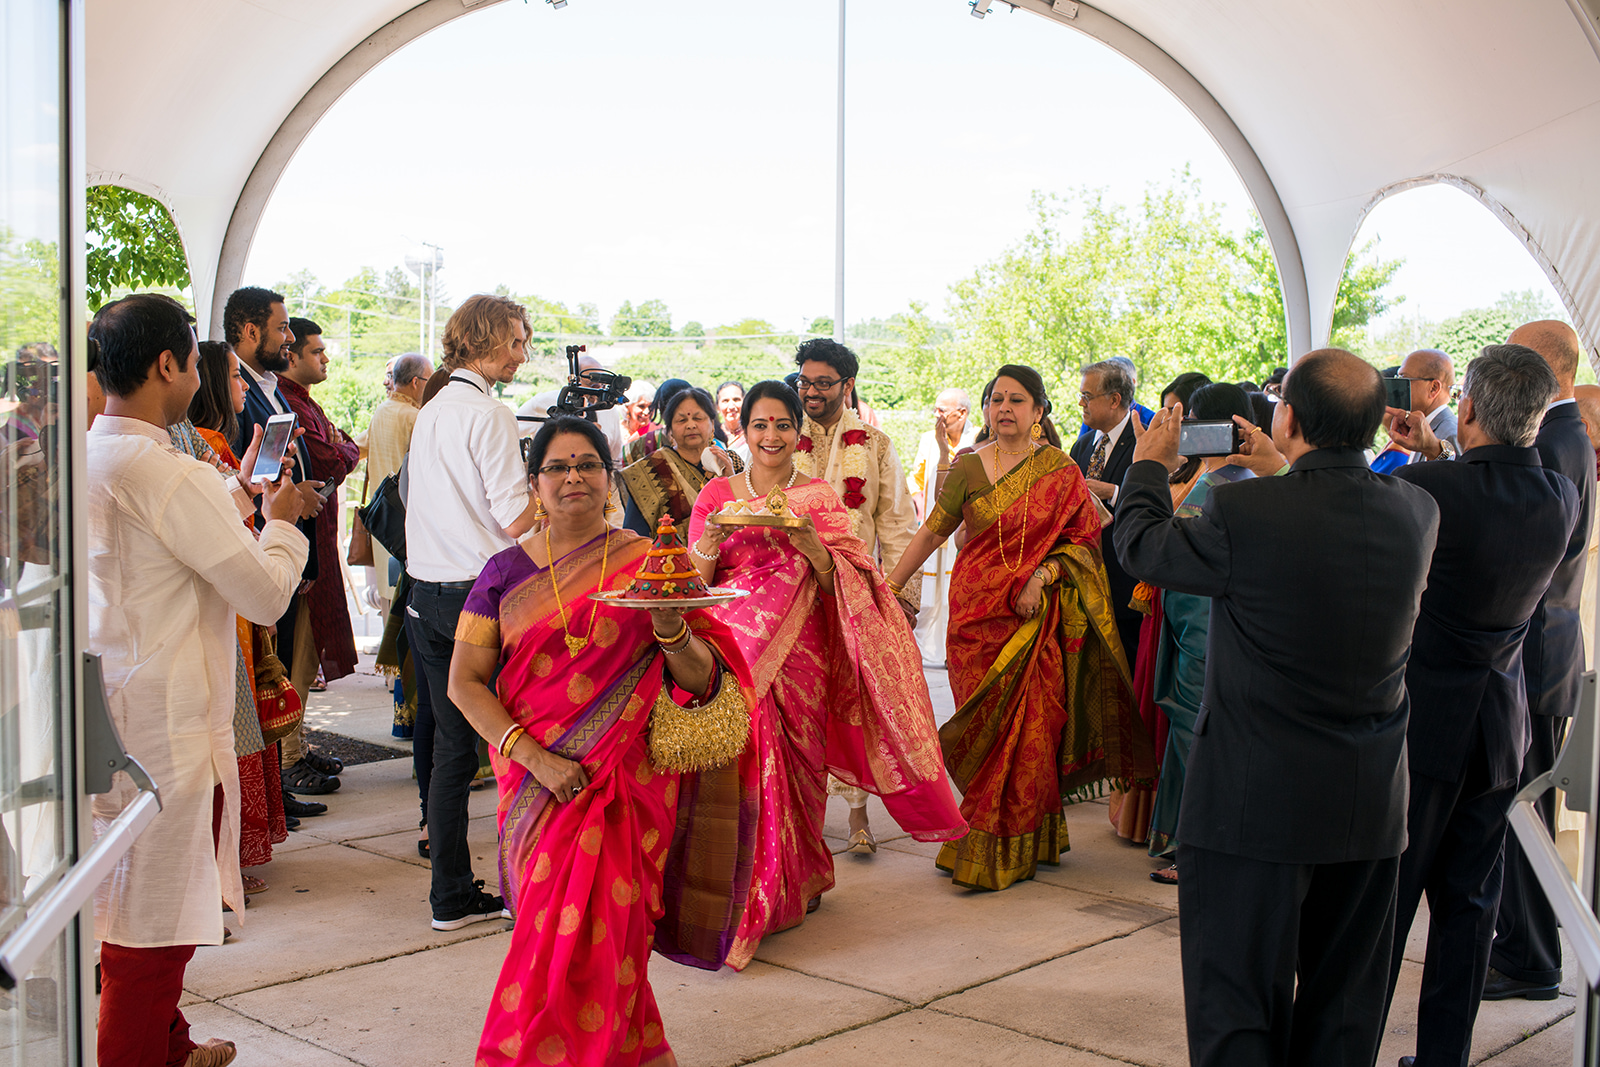 Le Cape Weddings - South Asian Wedding - Ishani and Sidhart - Welcome Ceremony-15.jpg